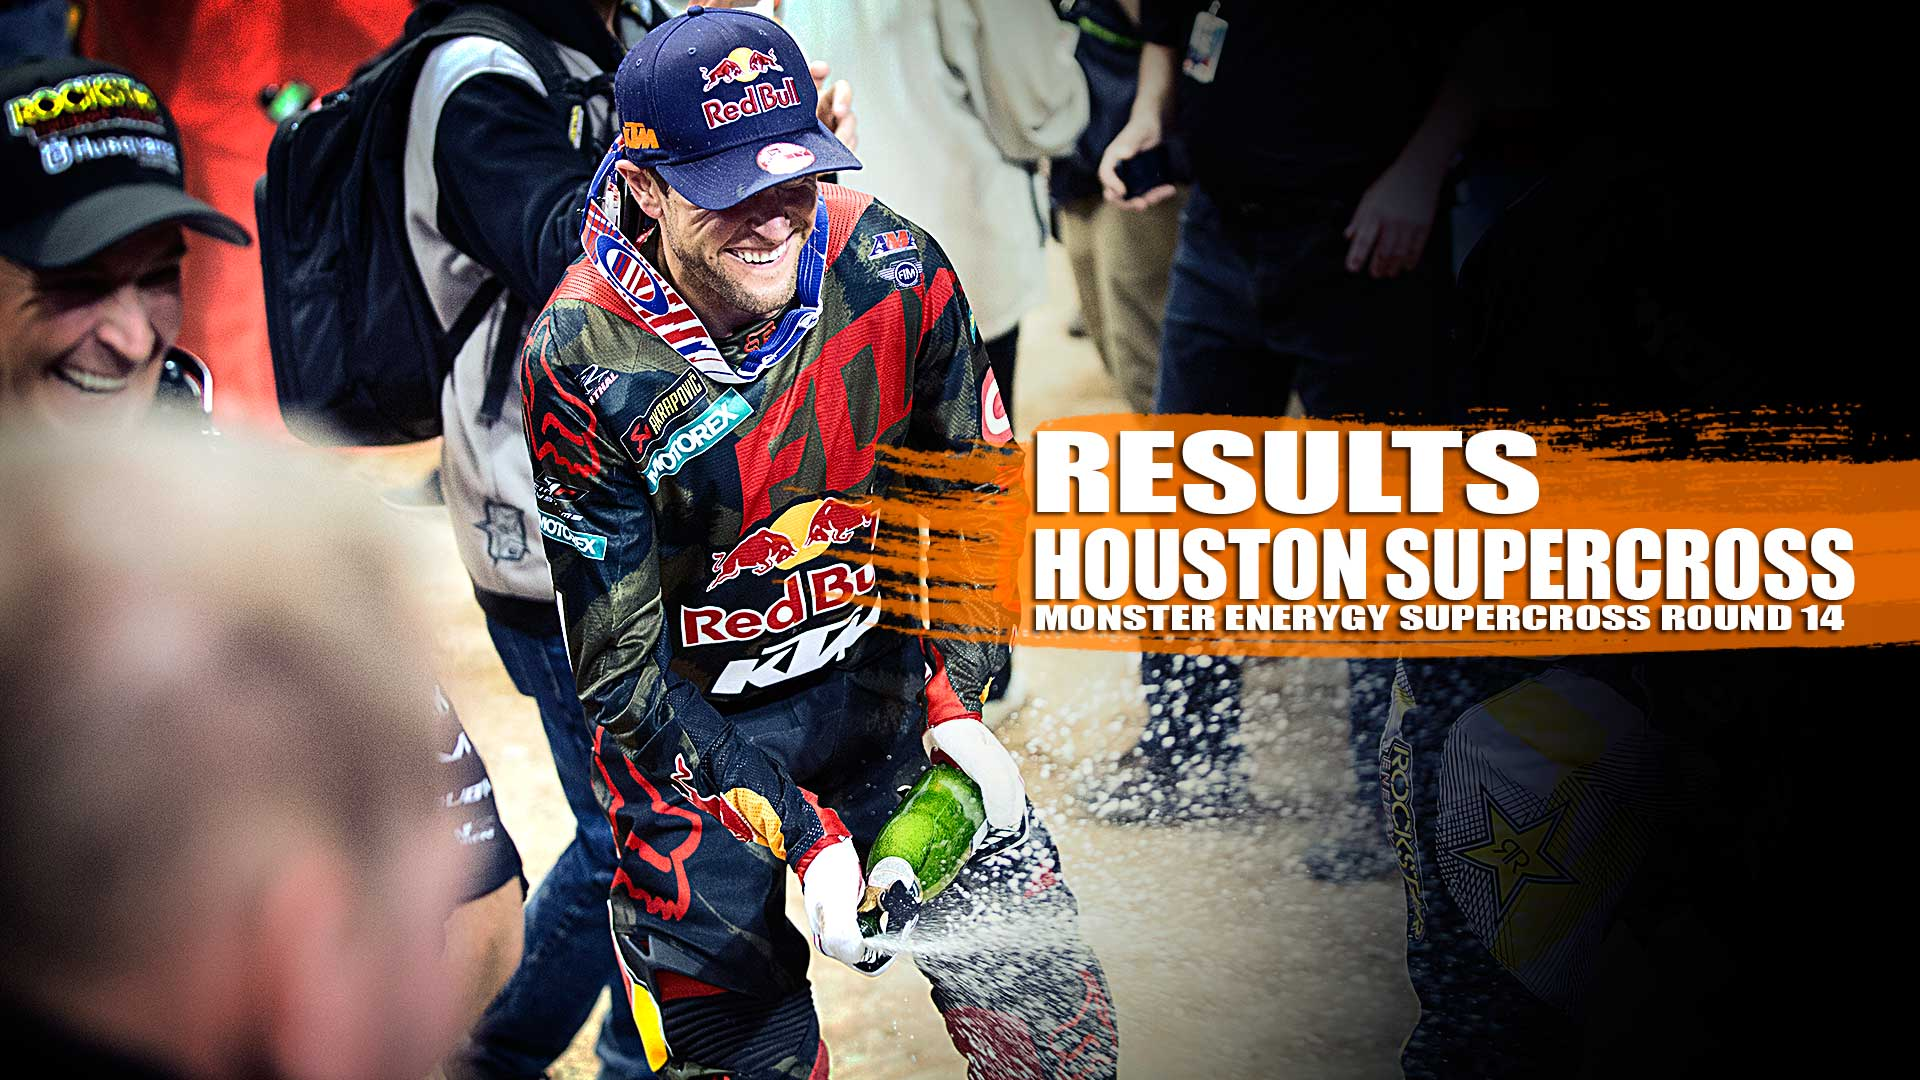 RESULTS: Houston Monster Energy AMA Supercross Round 14